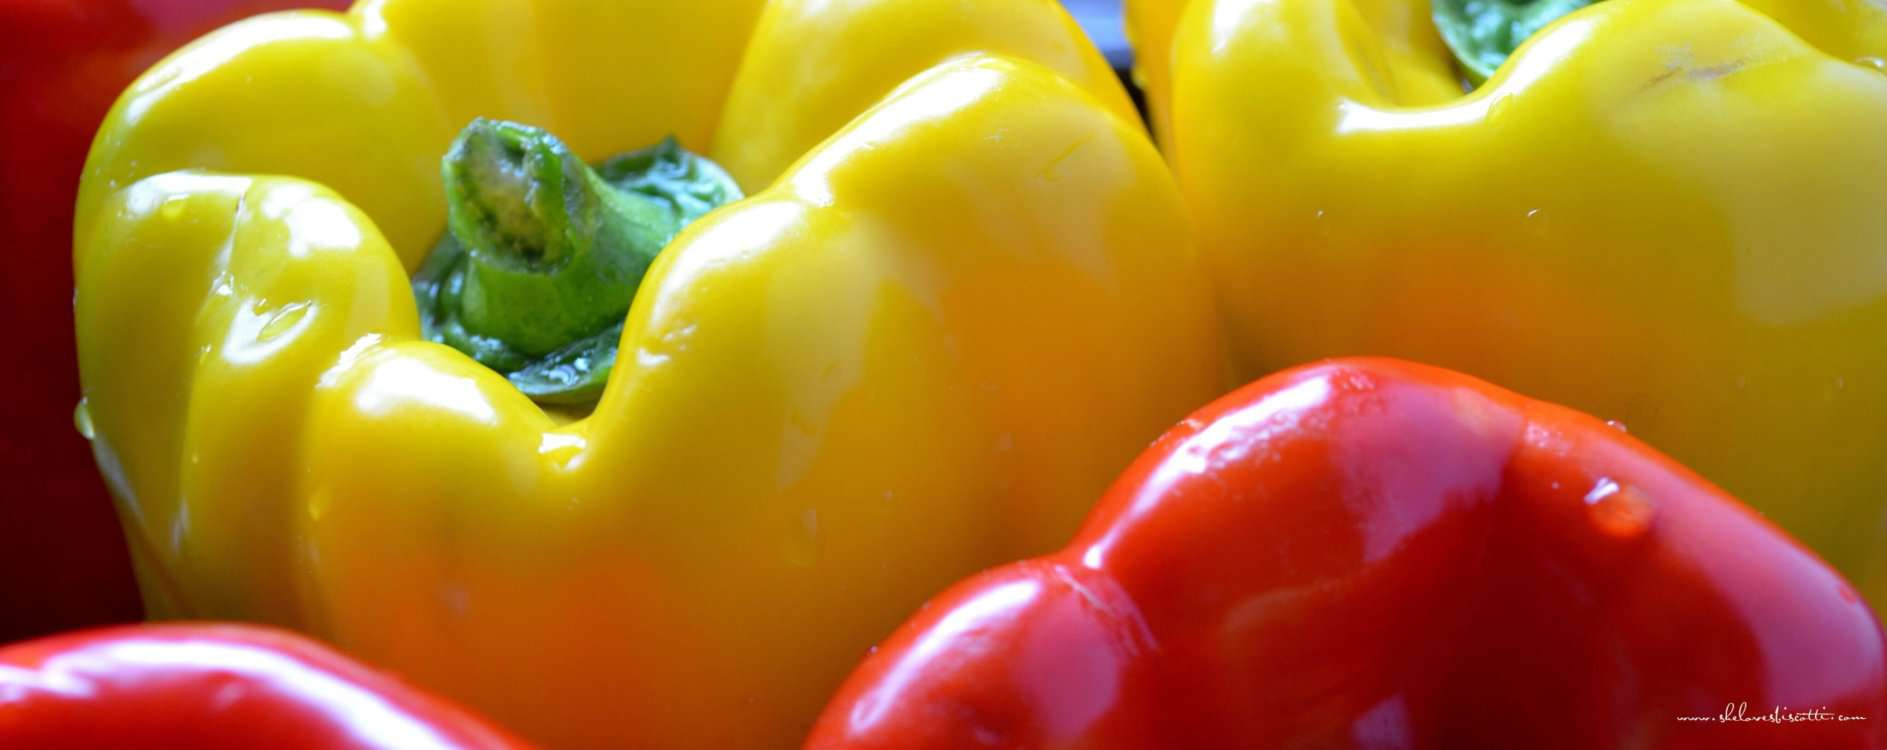 Red and yellow peppers.